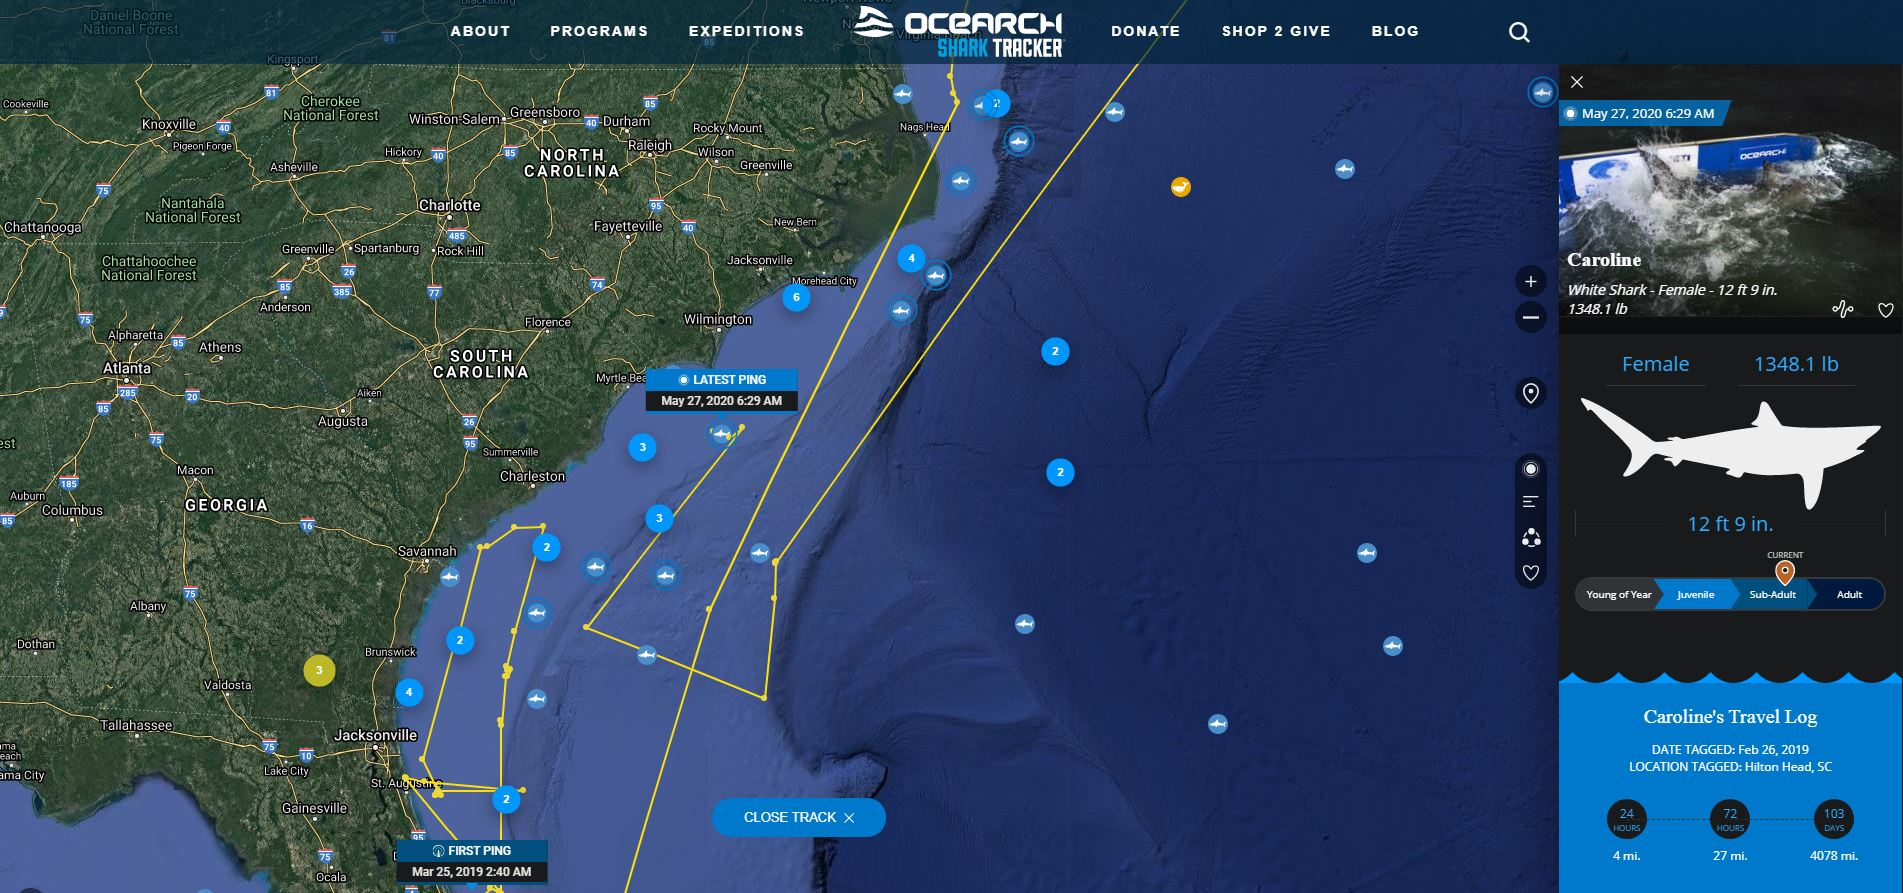 Screen shot of OCEARCH's tracking map on Wednesday, May 27, 2020. (Courtesy - OCEARCH)